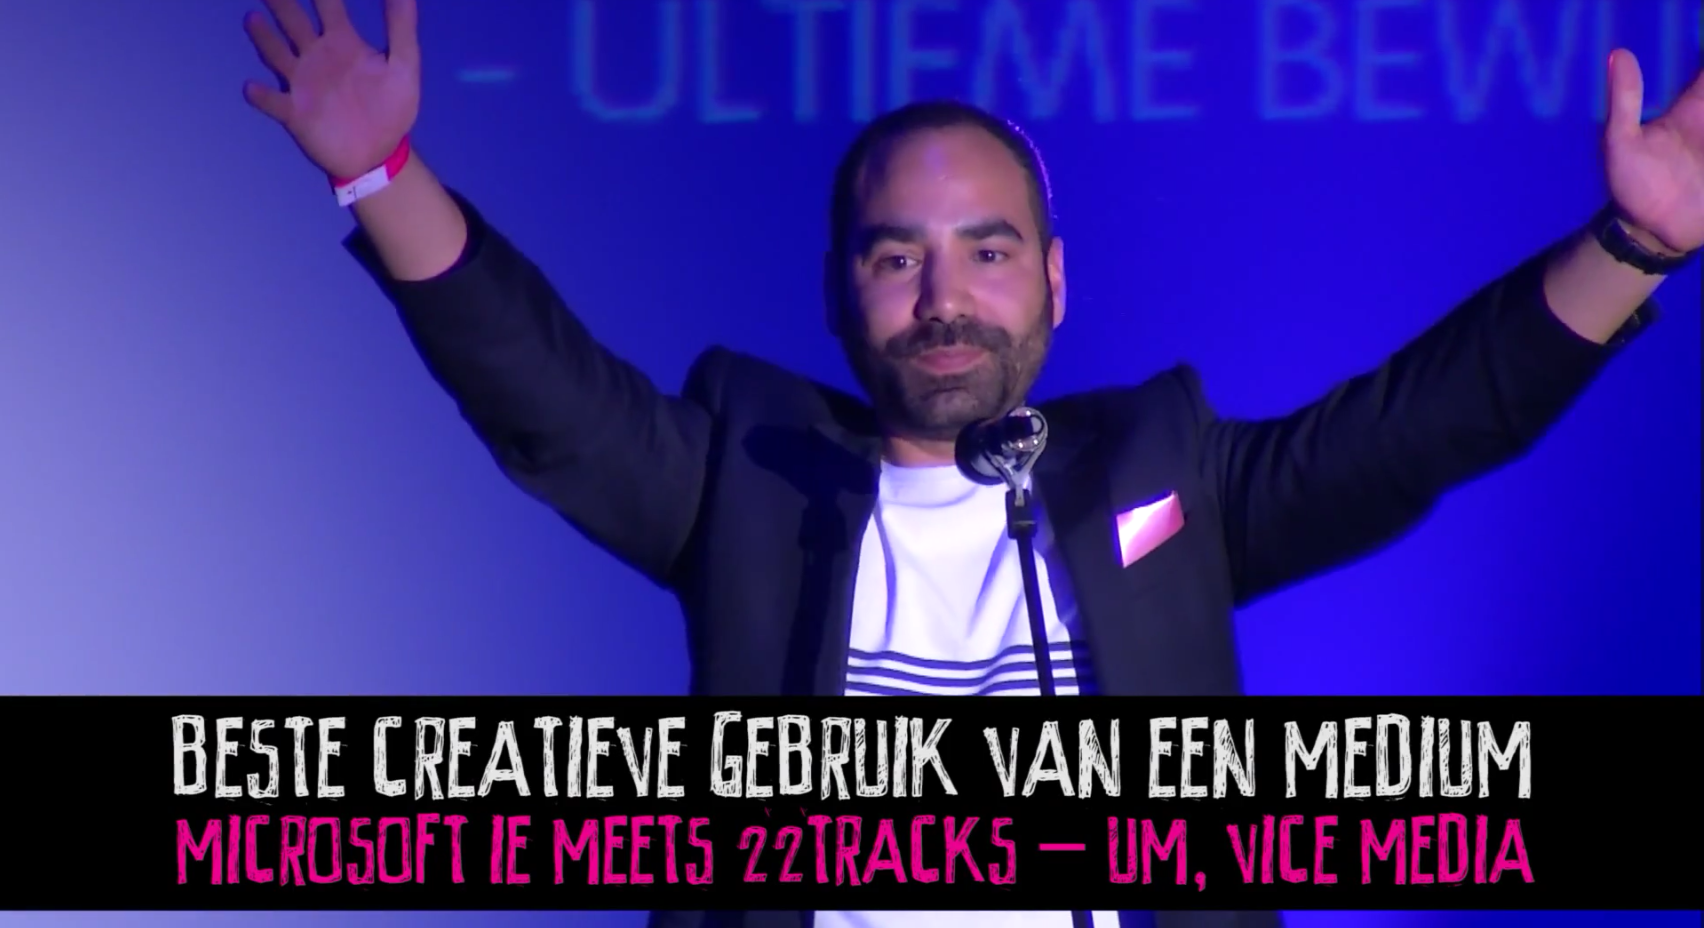 UM Amsterdam takes two AMMA awards - Best Creative Use of a Medium and Media Advertiser of the Year!  Congrats! http://t.co/sNM2rtbyBy